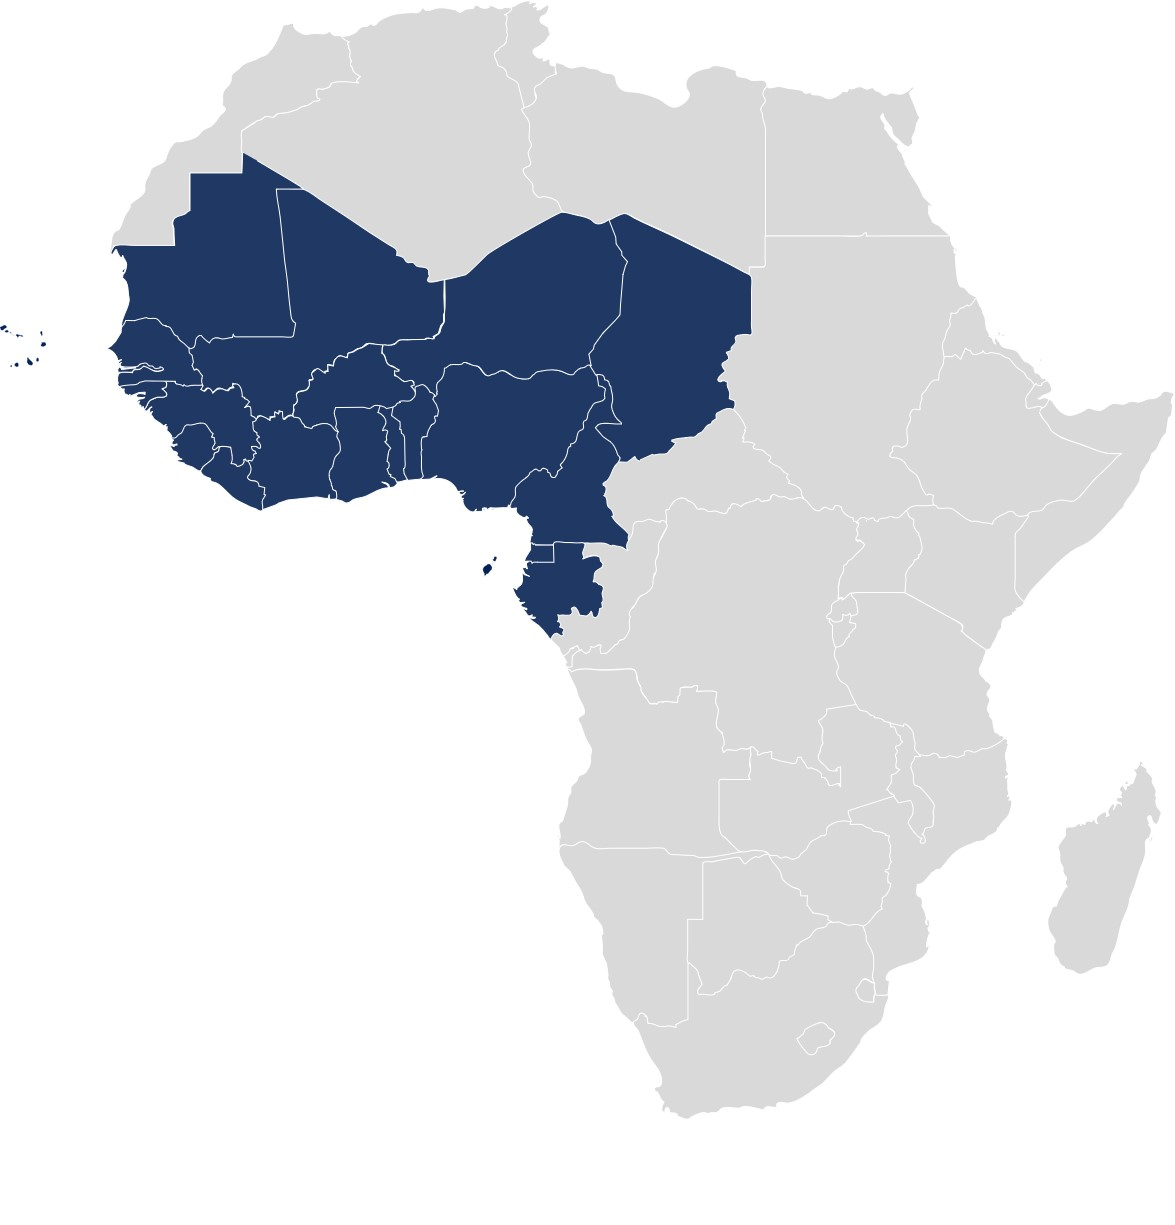 map of Africa with West Africa countries highlighted